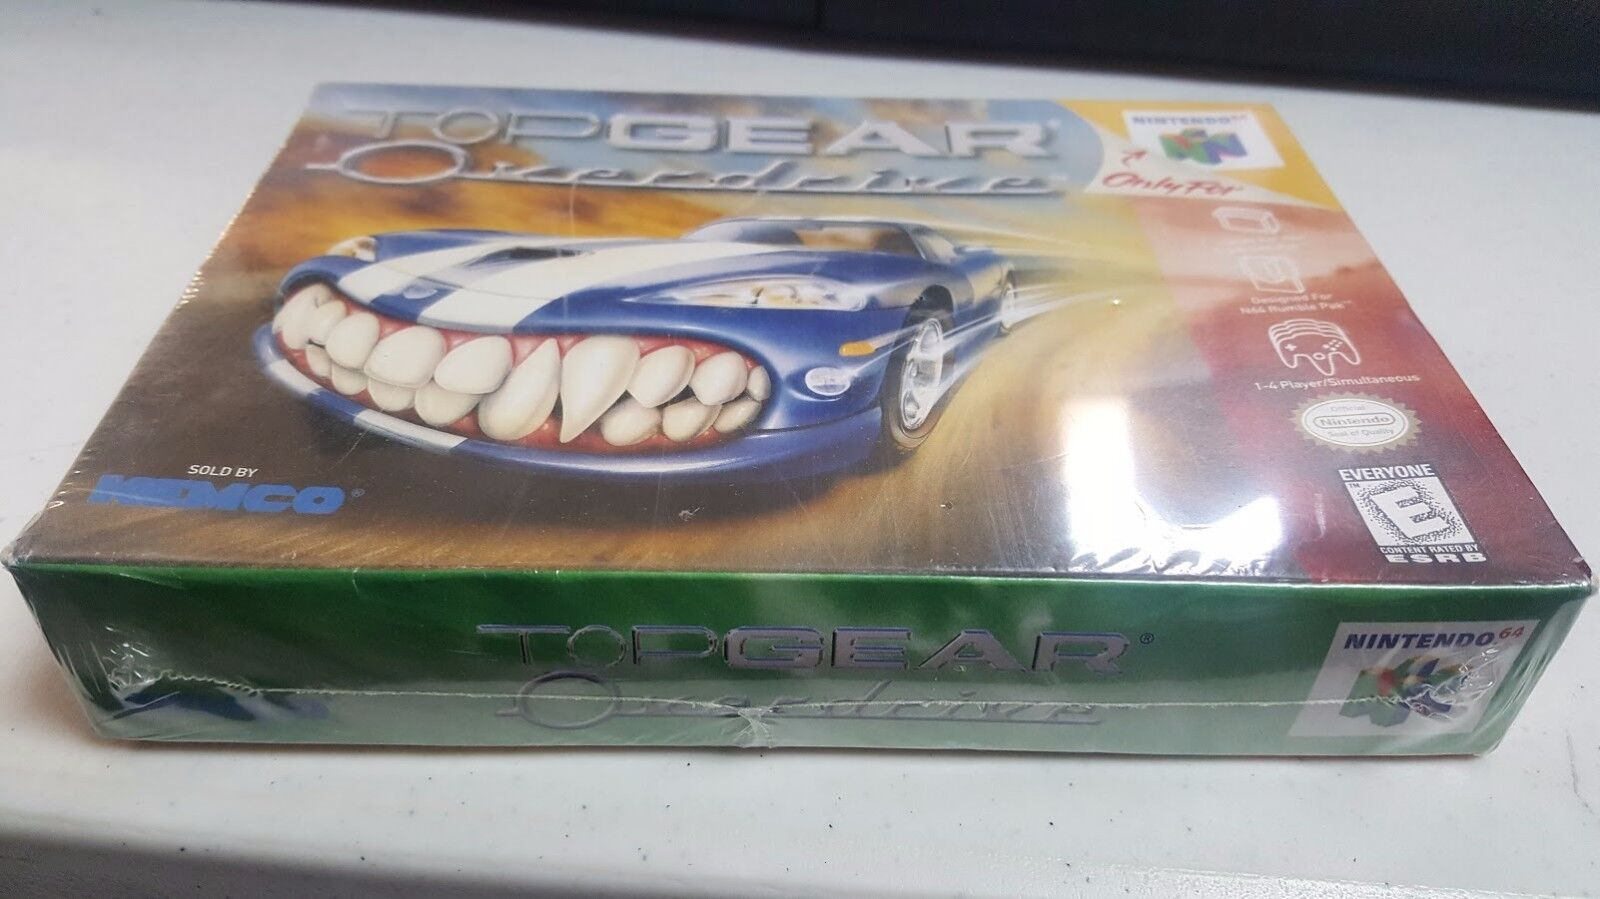 Top gear overdrive nintendo 64 1998 ebay picture 1 of 4 sciox Image collections